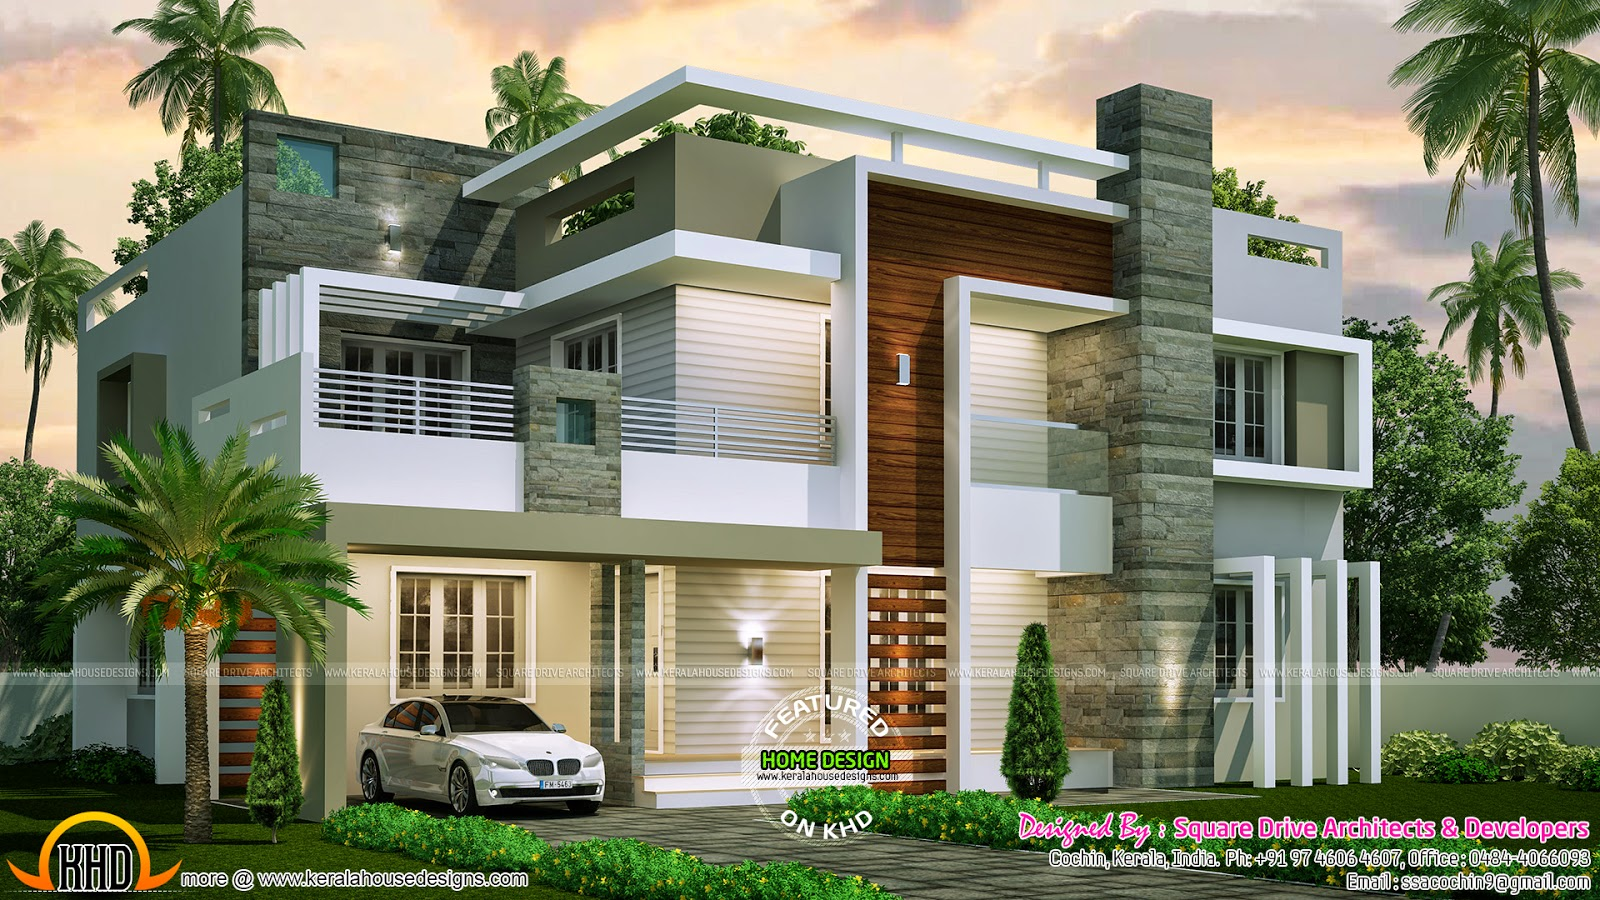 4 bedroom contemporary home design kerala home design Good house designs in india